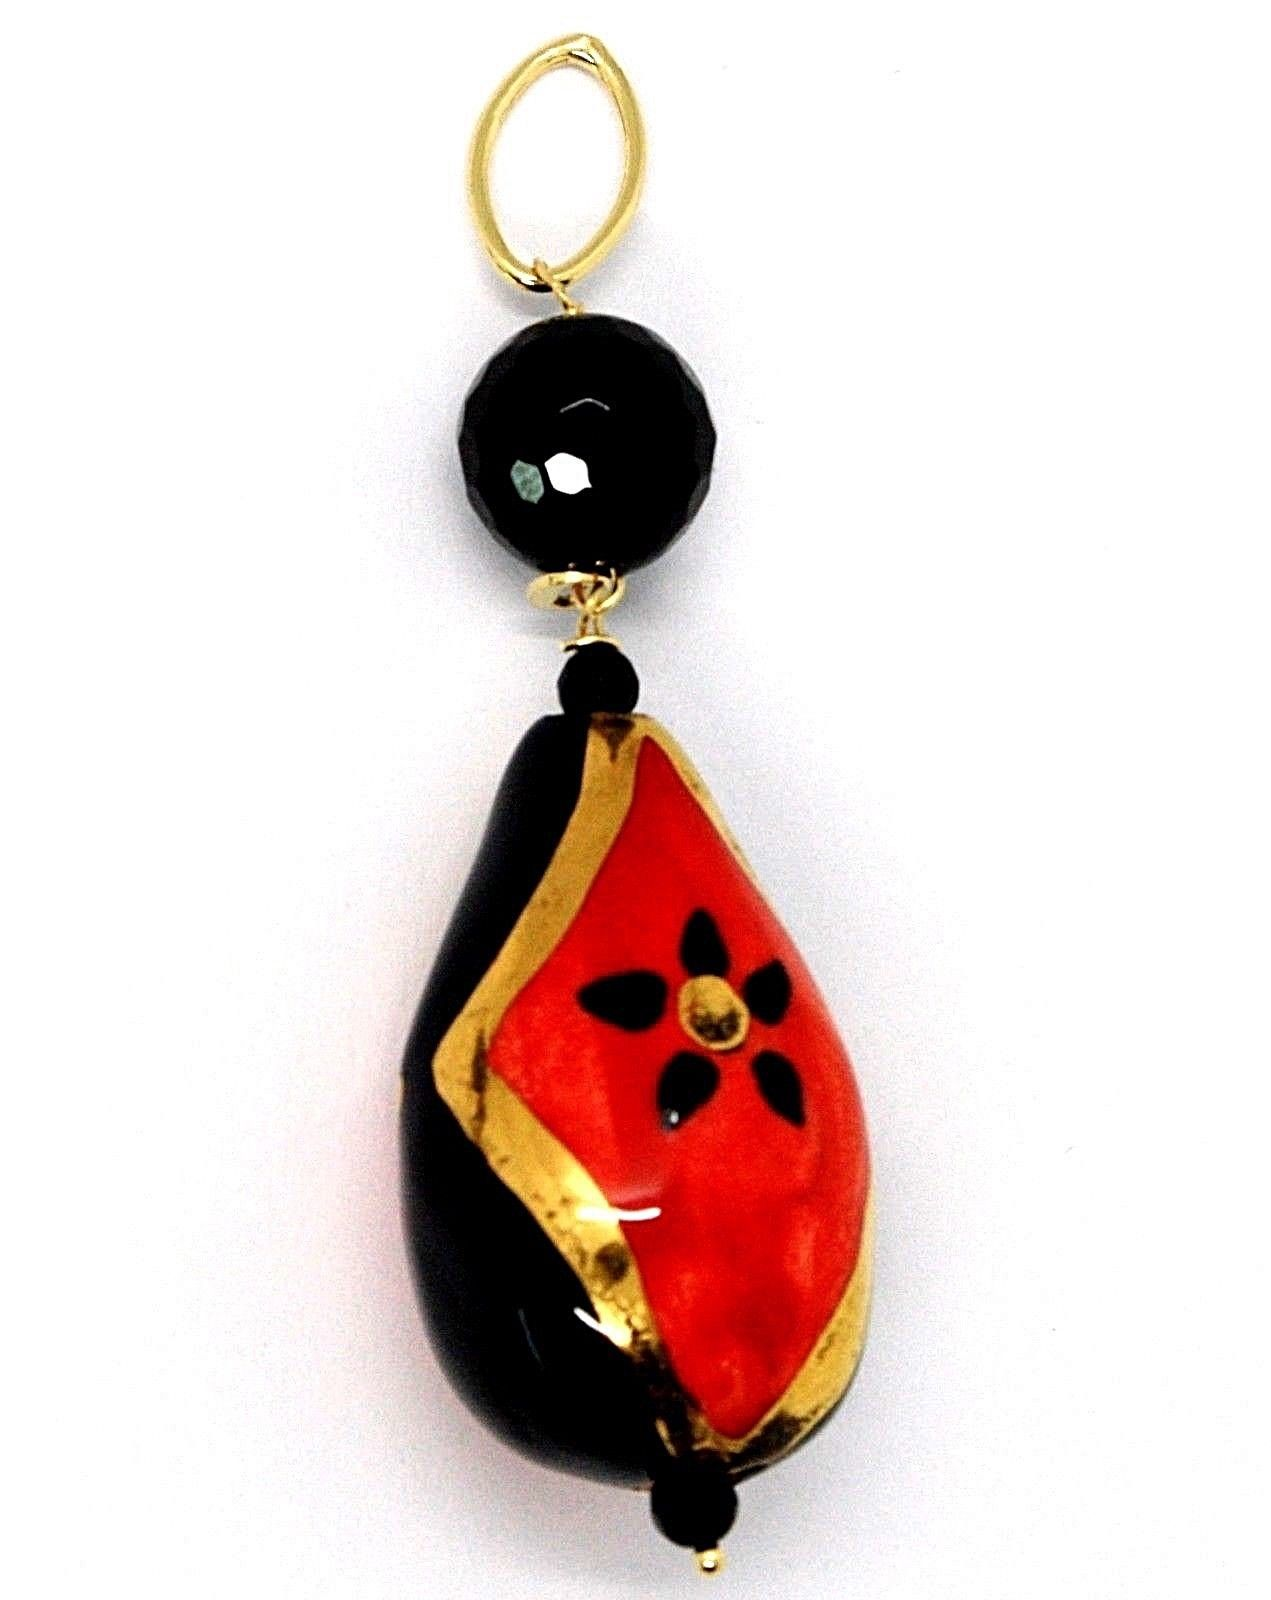 18K YELLOW GOLD PENDANT, ONYX, BLACK AND RED CERAMIC DROP HAND PAINTED IN ITALY